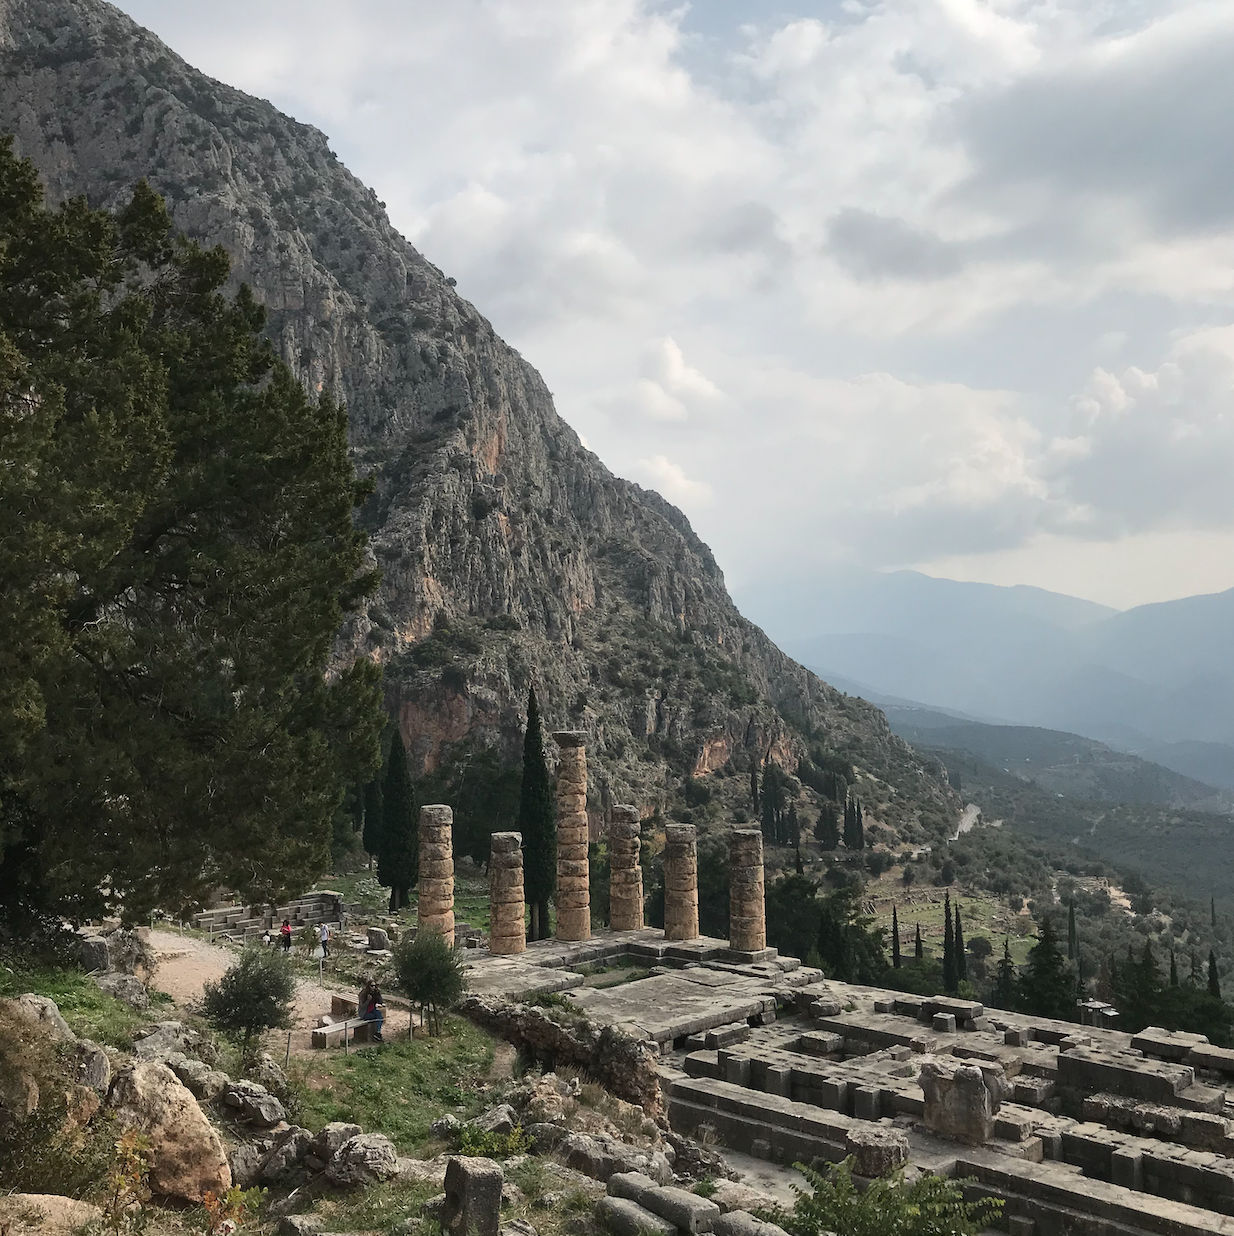 Ruins of the Temple of Apollo, Delphi (GR)